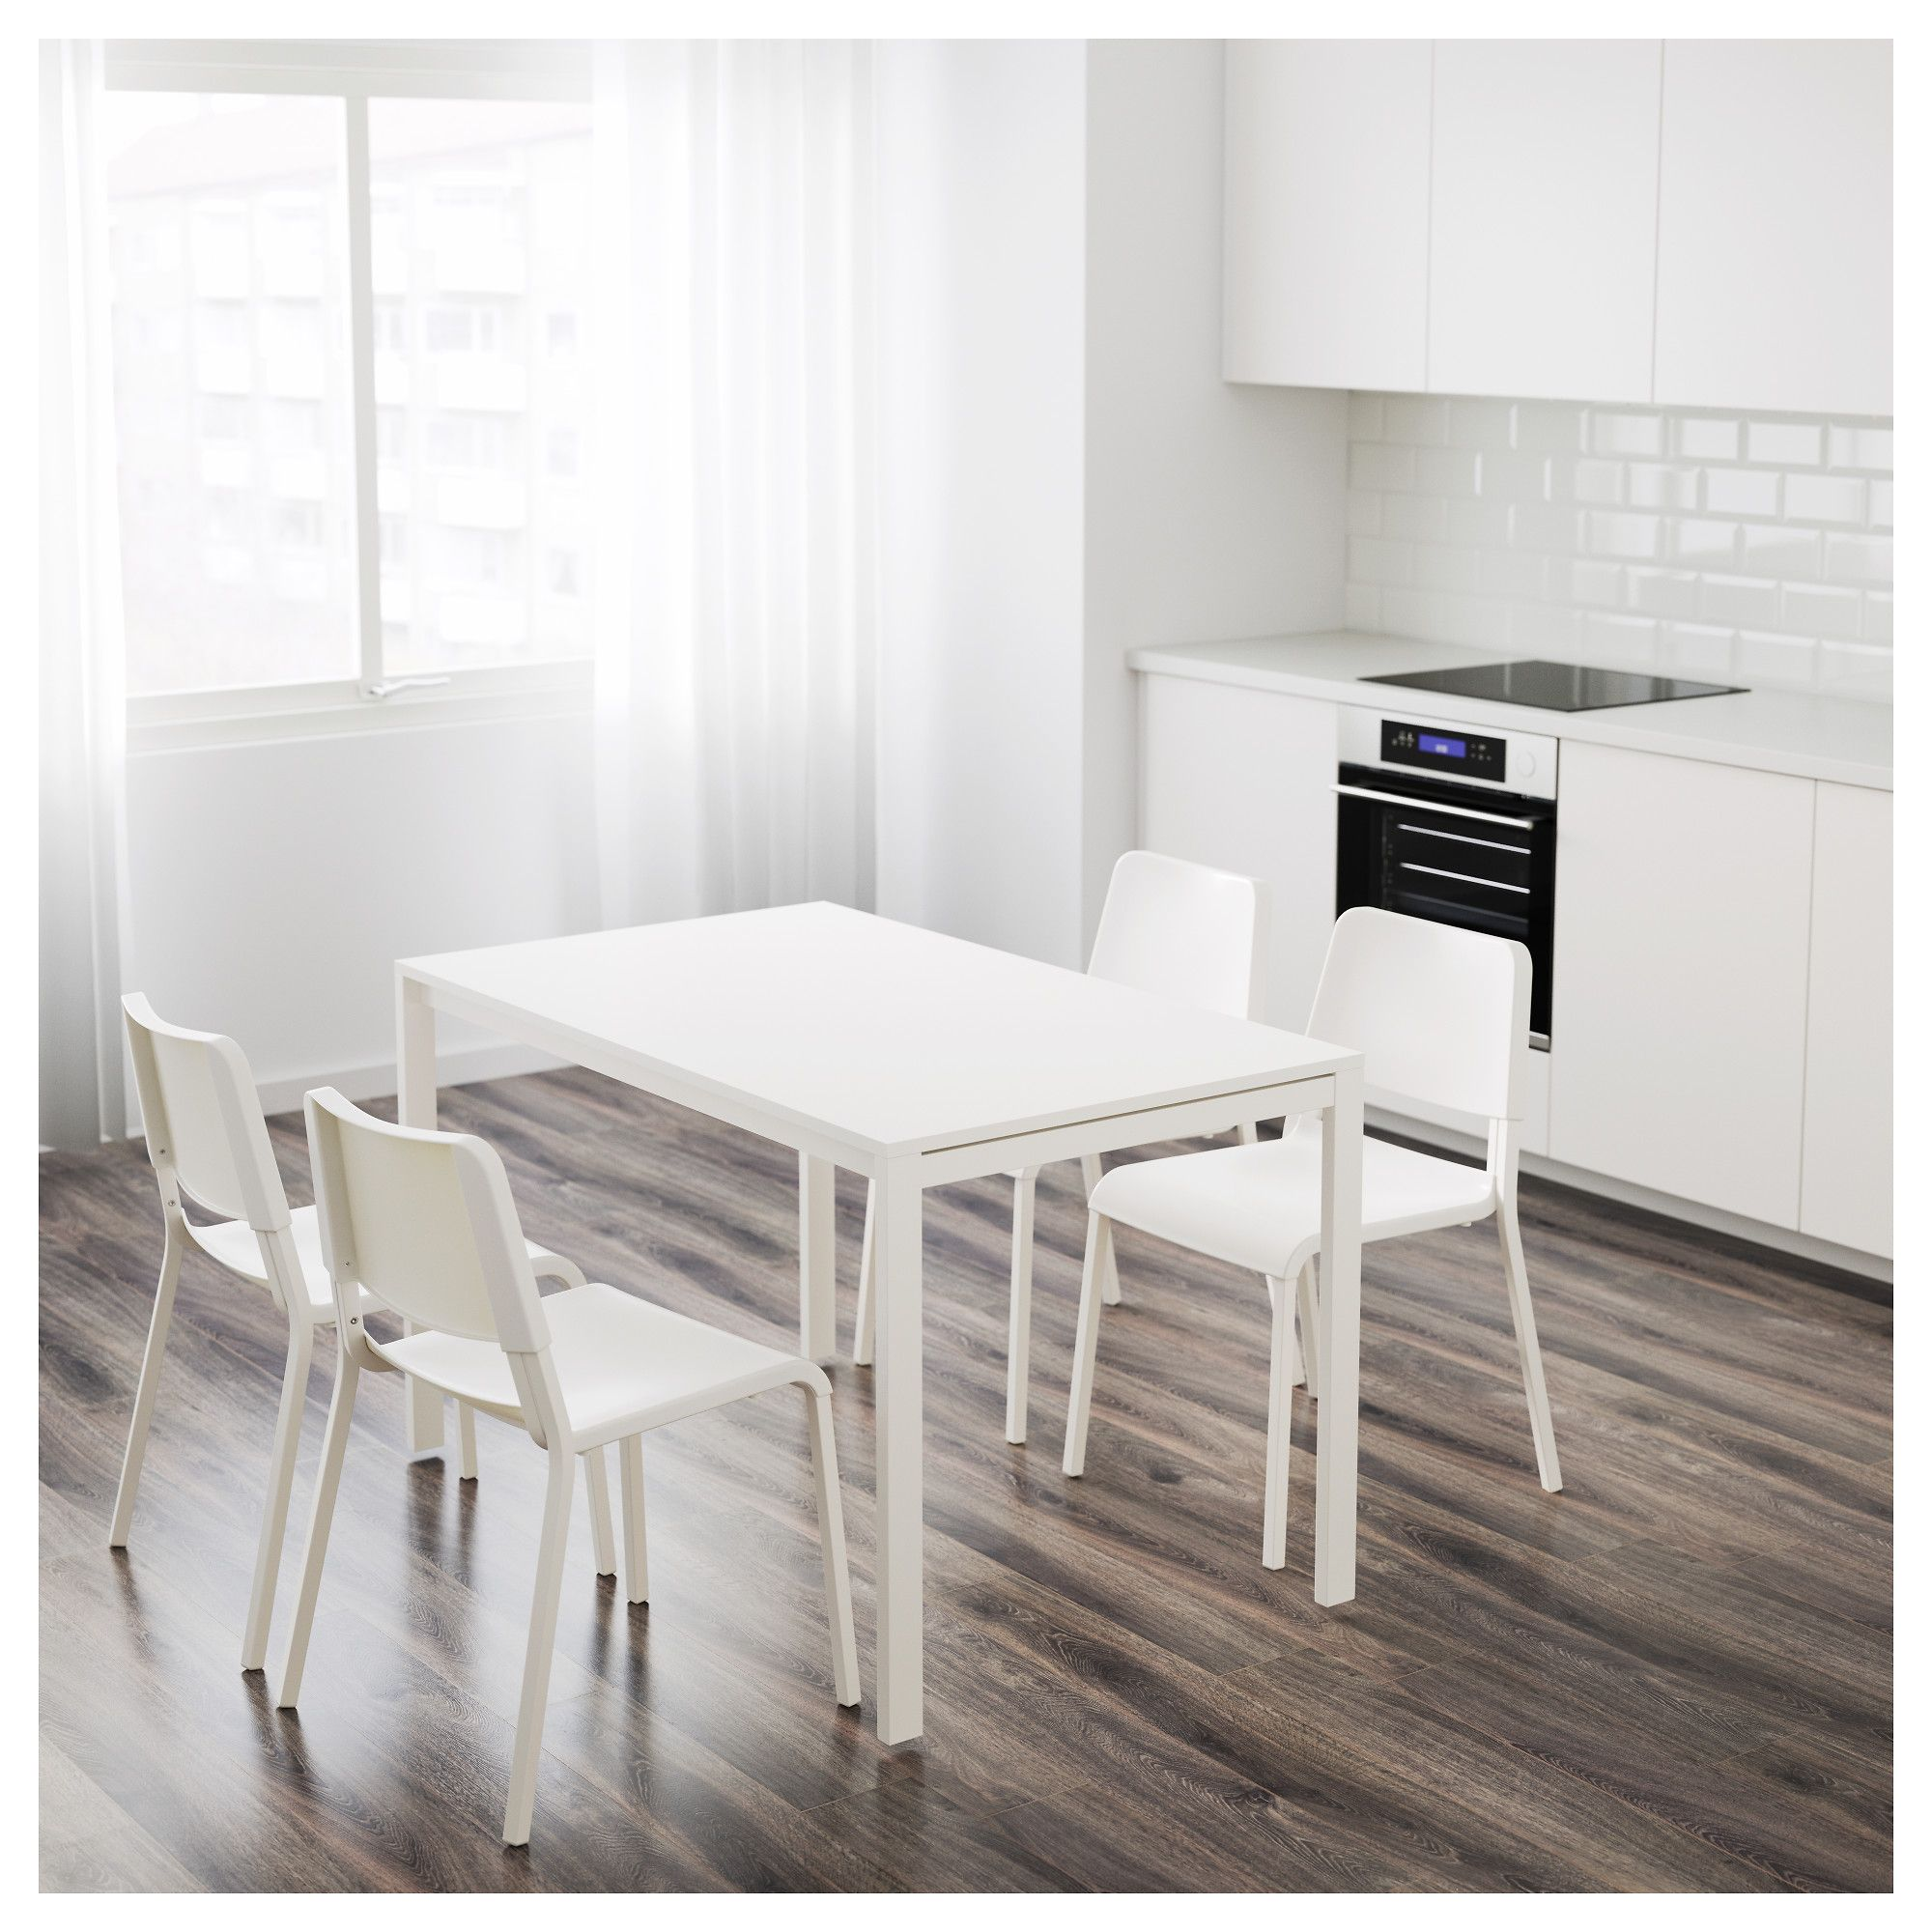 ikea melltorp teodores table and 4 chairs white rh pinterest com